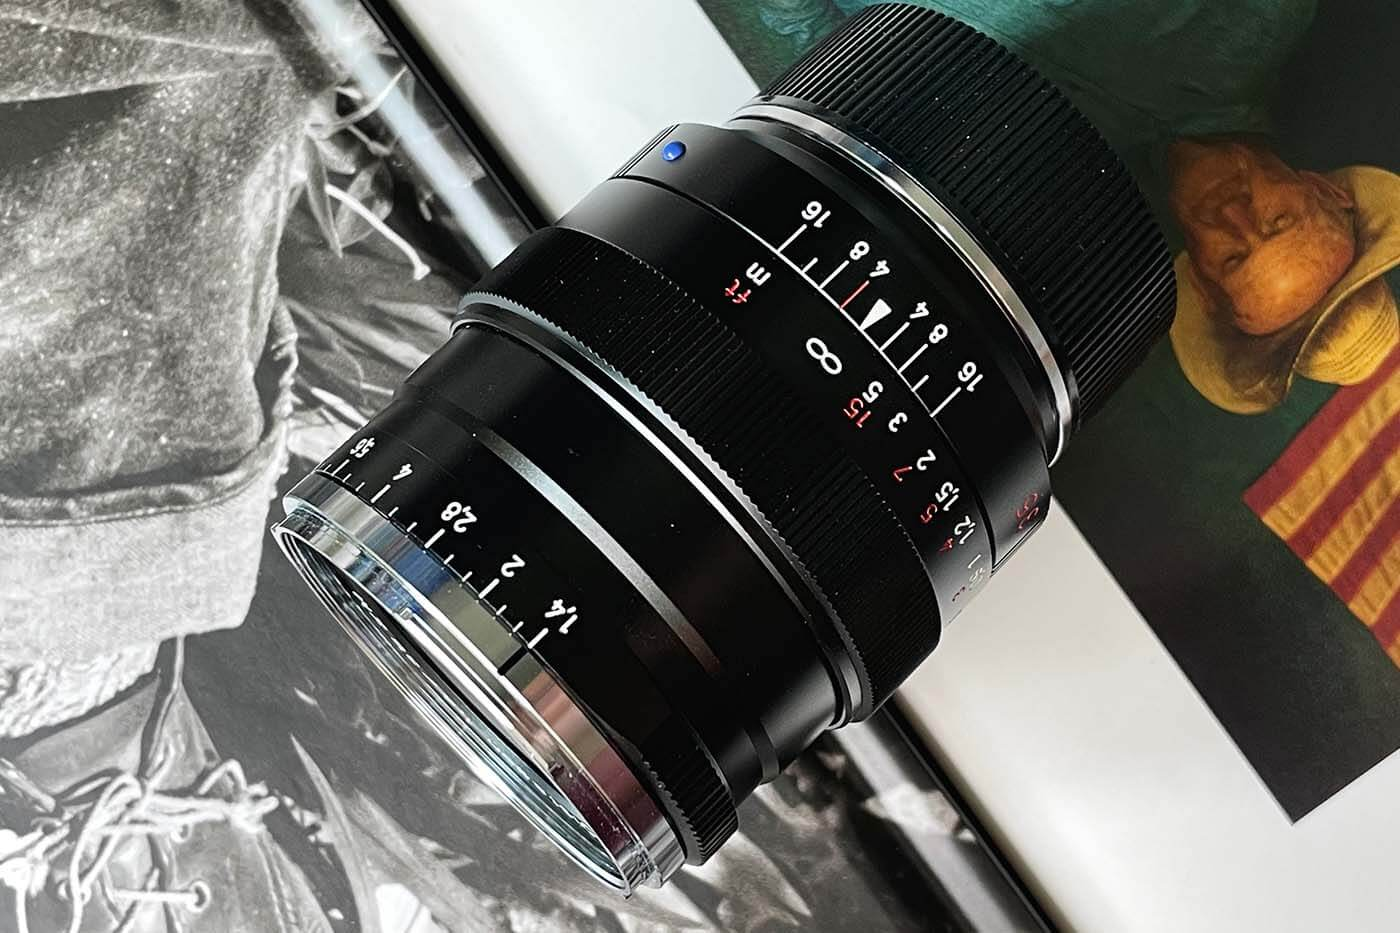 Lens-review-zeiss-distagon-35mm-f1.4-35-1.4-zm-m-mount-leica-wide-angle-street-character-optics-optical-barrel-construct-build-quality-top